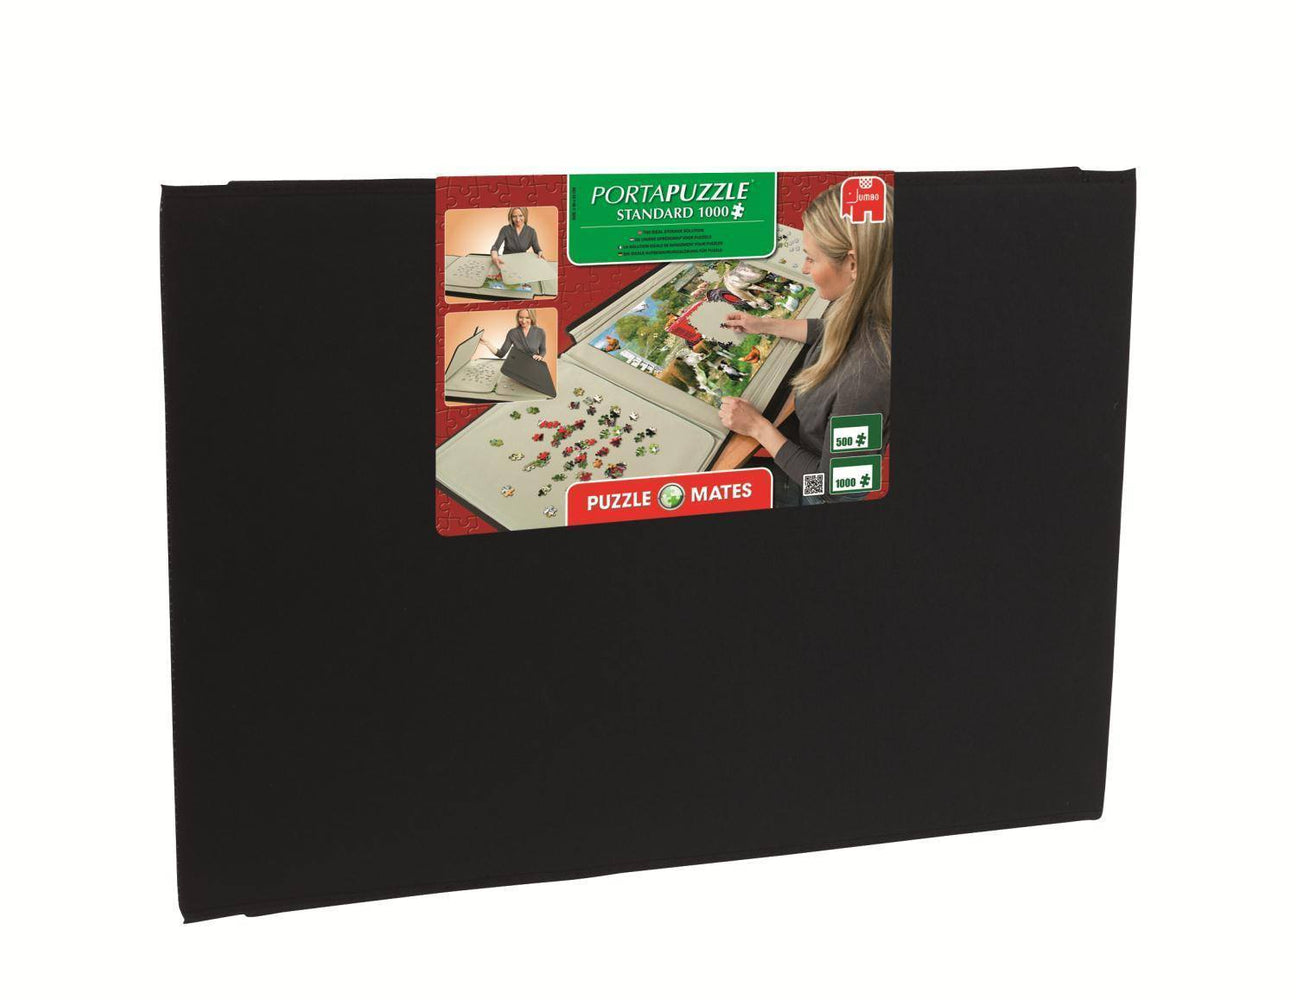 Portapuzzle Standard - Storage Accessory for 1000 piece Jigsaw Puzzles - All Jigsaw Puzzles UK  - 1